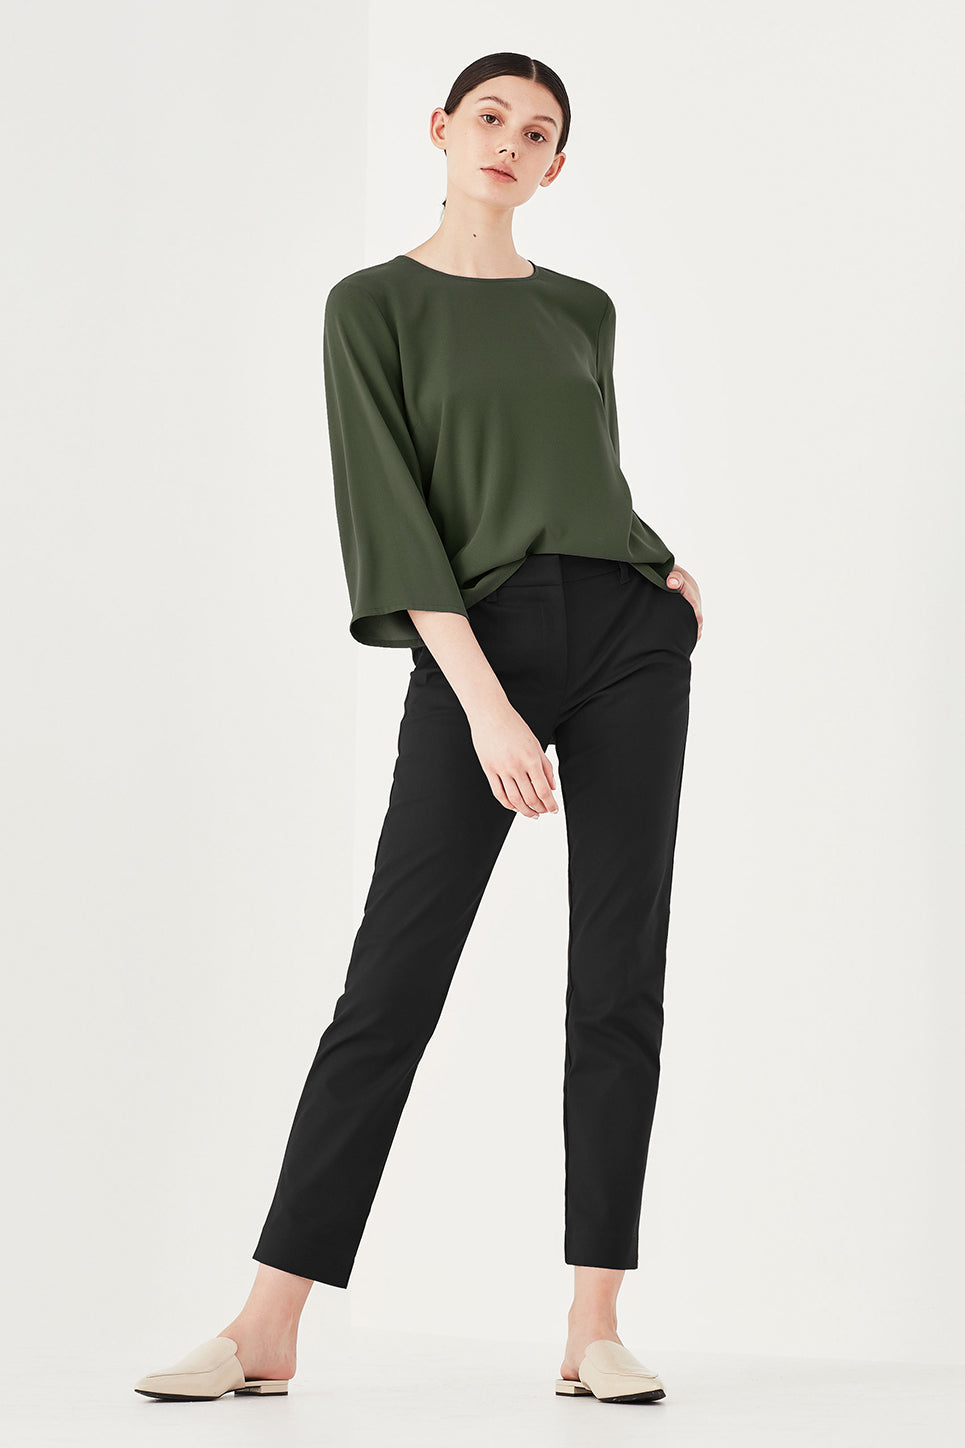 The Roxy Top in Hunter Green